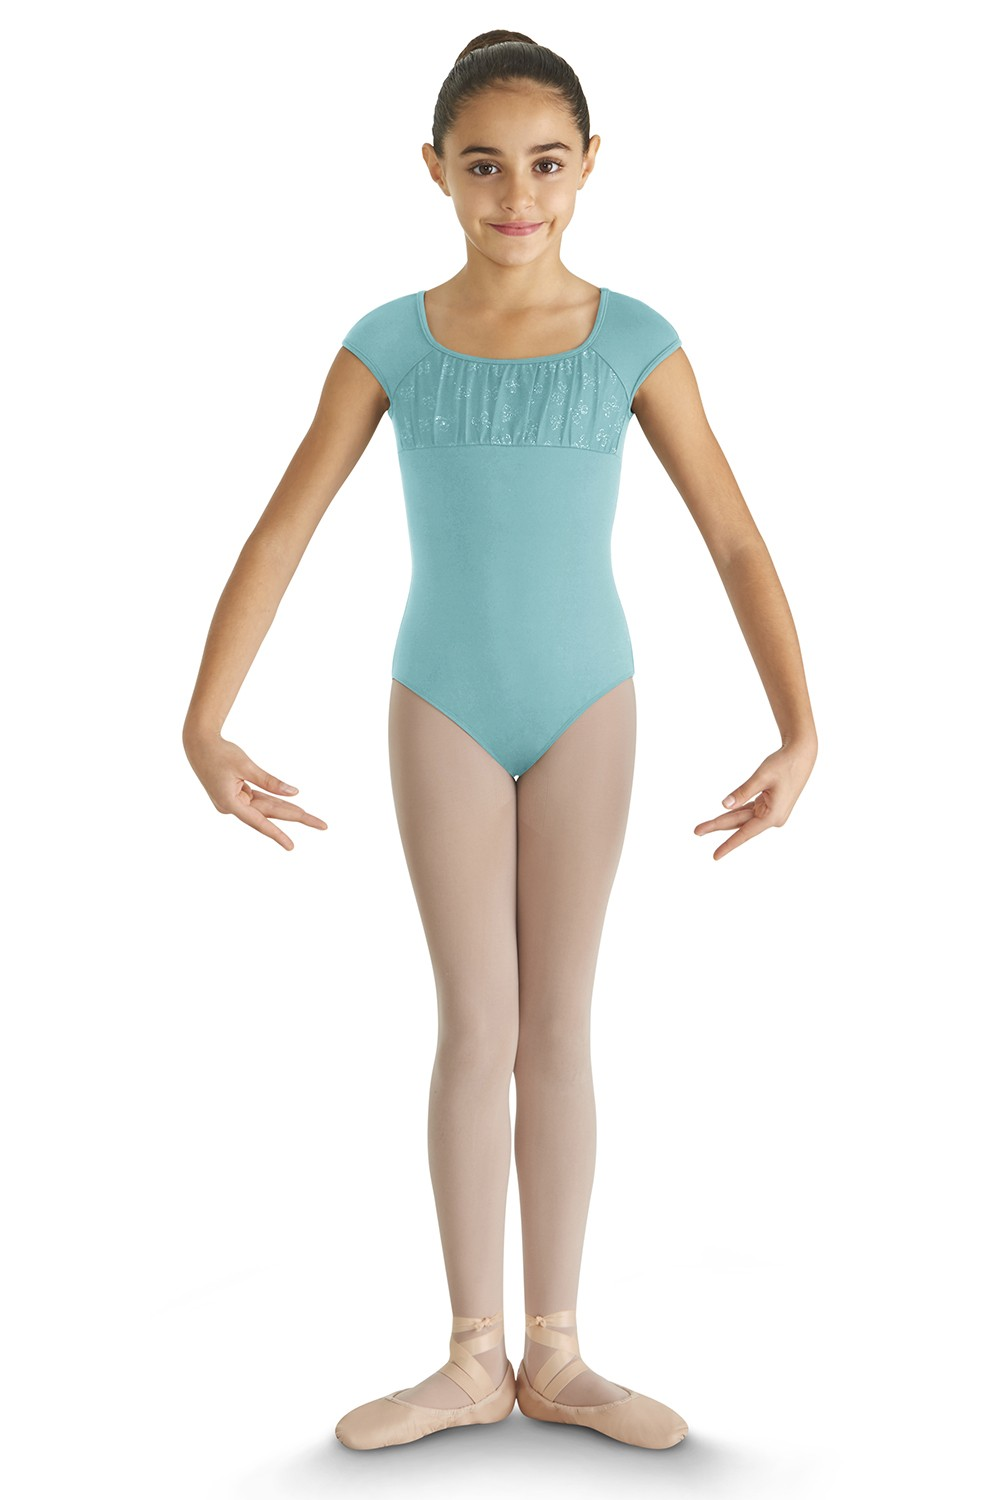 Ashtoret Children's Dance Leotards